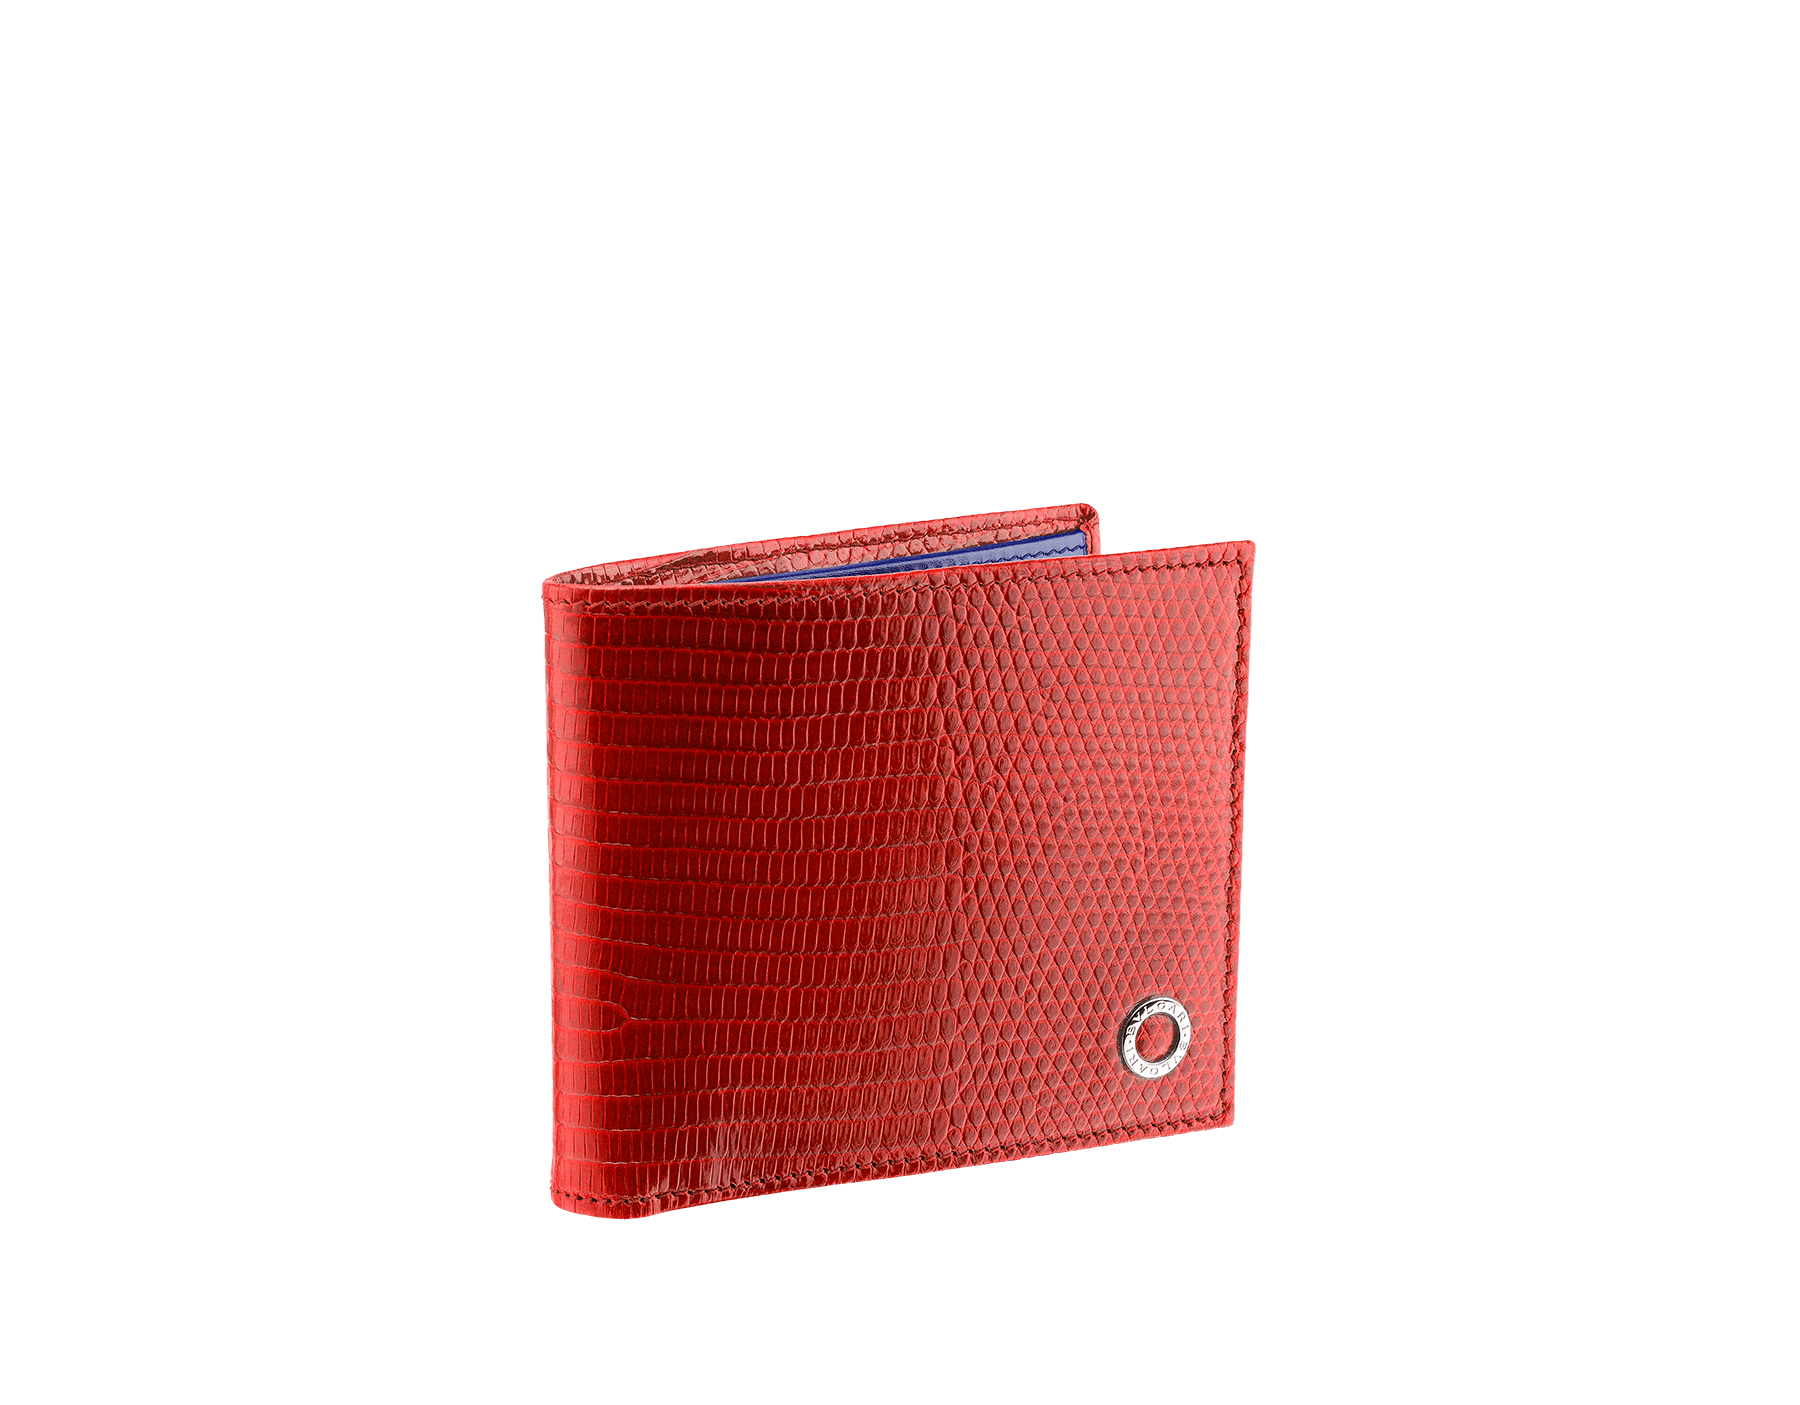 Wallet hipster for men in ruby red shiny lizard skin, royal sapphire calf leather and royal sapphire nappa lining, with brass palladium plated hardware featuring the BVLGARI BVLGARI motif. 282883 image 1